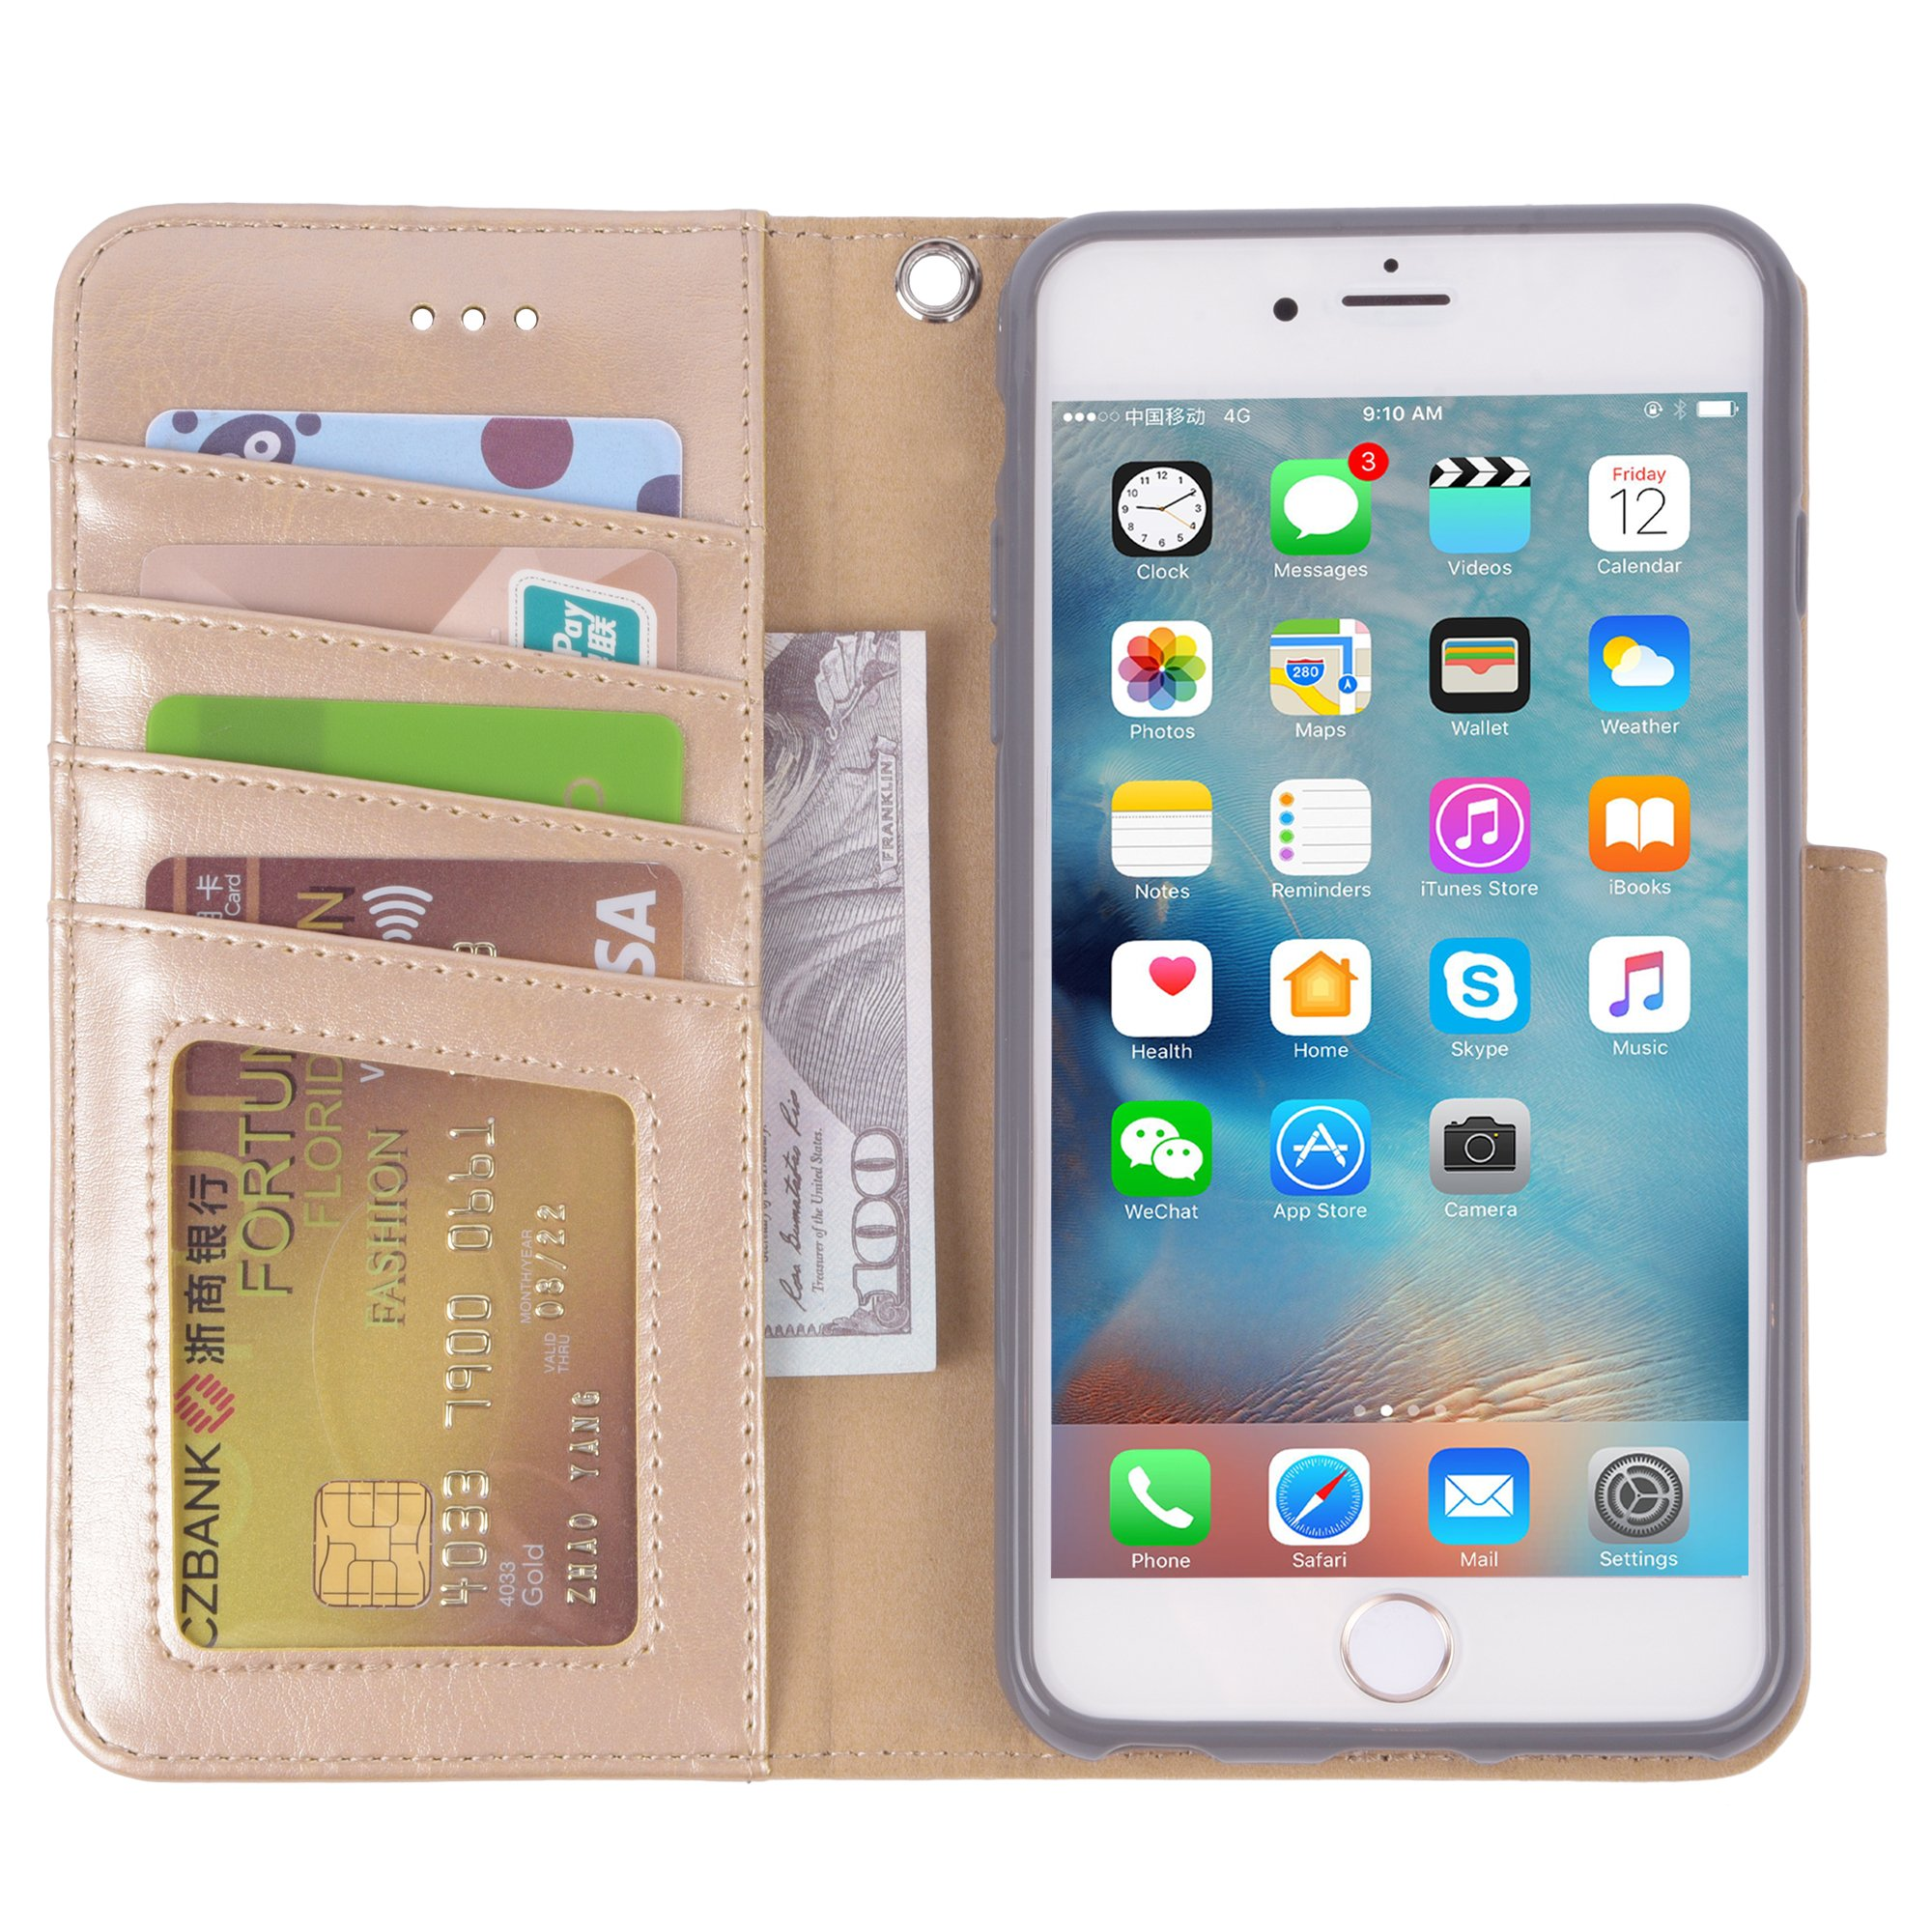 Iphone 6s Plus Case, iphone 6 plus case, Arae [Wrist Strap] Flip Folio [Kickstand Feature] PU leather wallet case with ID&Credit Card Pockets For Apple Iphone 6 plus/6S Plus 5.5 (champaign gold) by Arae (Image #4)